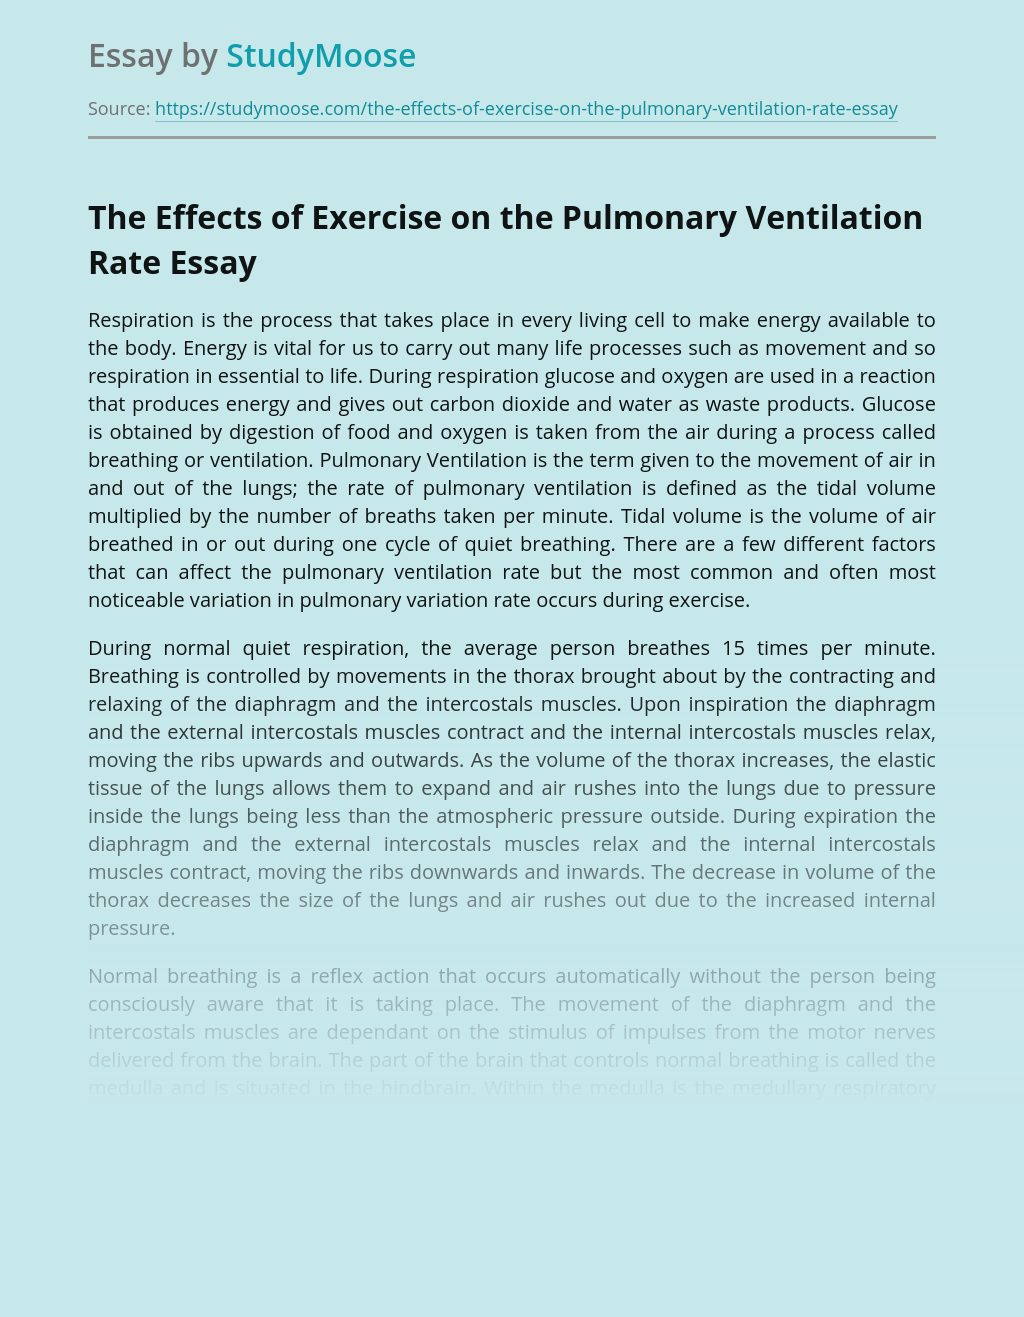 The Effects of Exercise on the Pulmonary Ventilation Rate